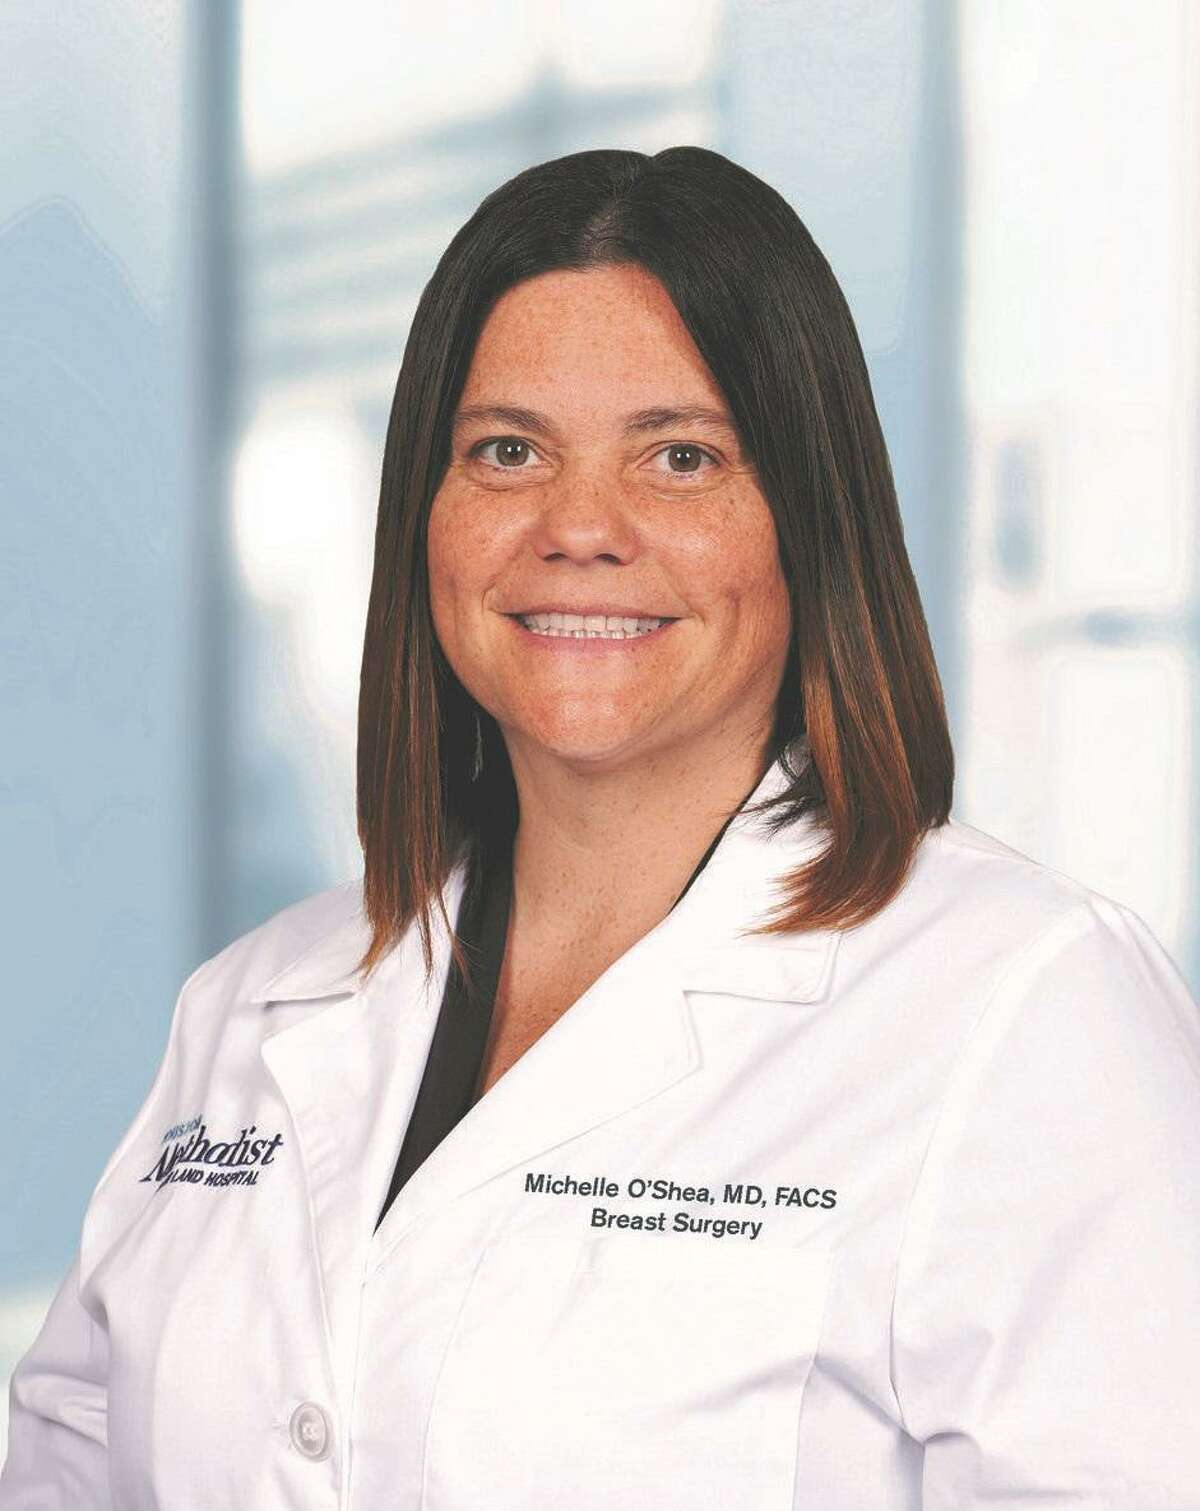 Dr. Michelle O'Shea, breast surgeon with Houston Methodist Breast Surgery Partners at Sugar Land, says while patient volume is up for screenings compared to earlier in the pandemic, there are still many women who could benefit from getting their regular mammograms.